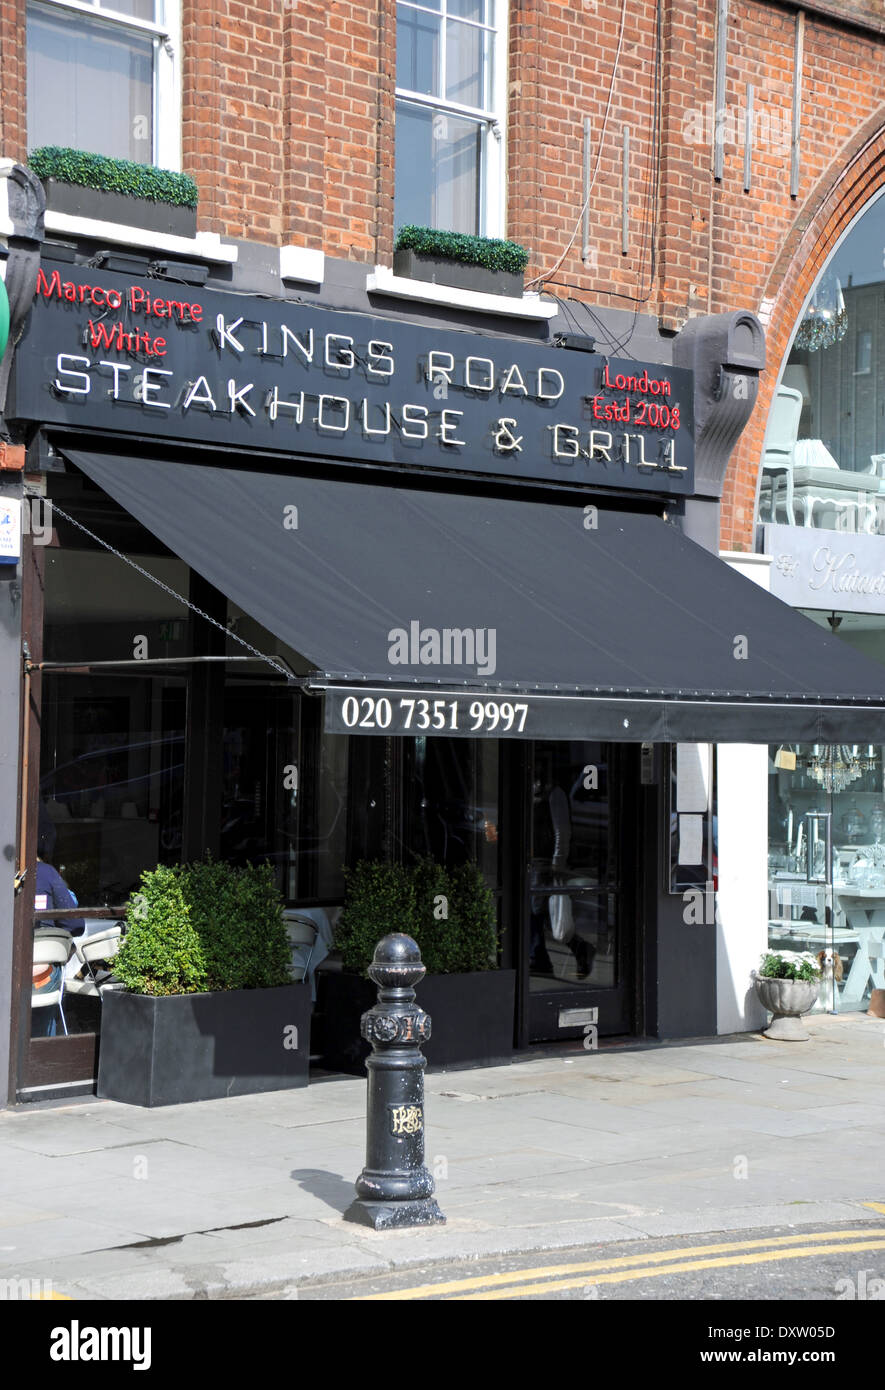 The Marco Pierre White Kings Road Steakhouse and Grill restaurant in ...